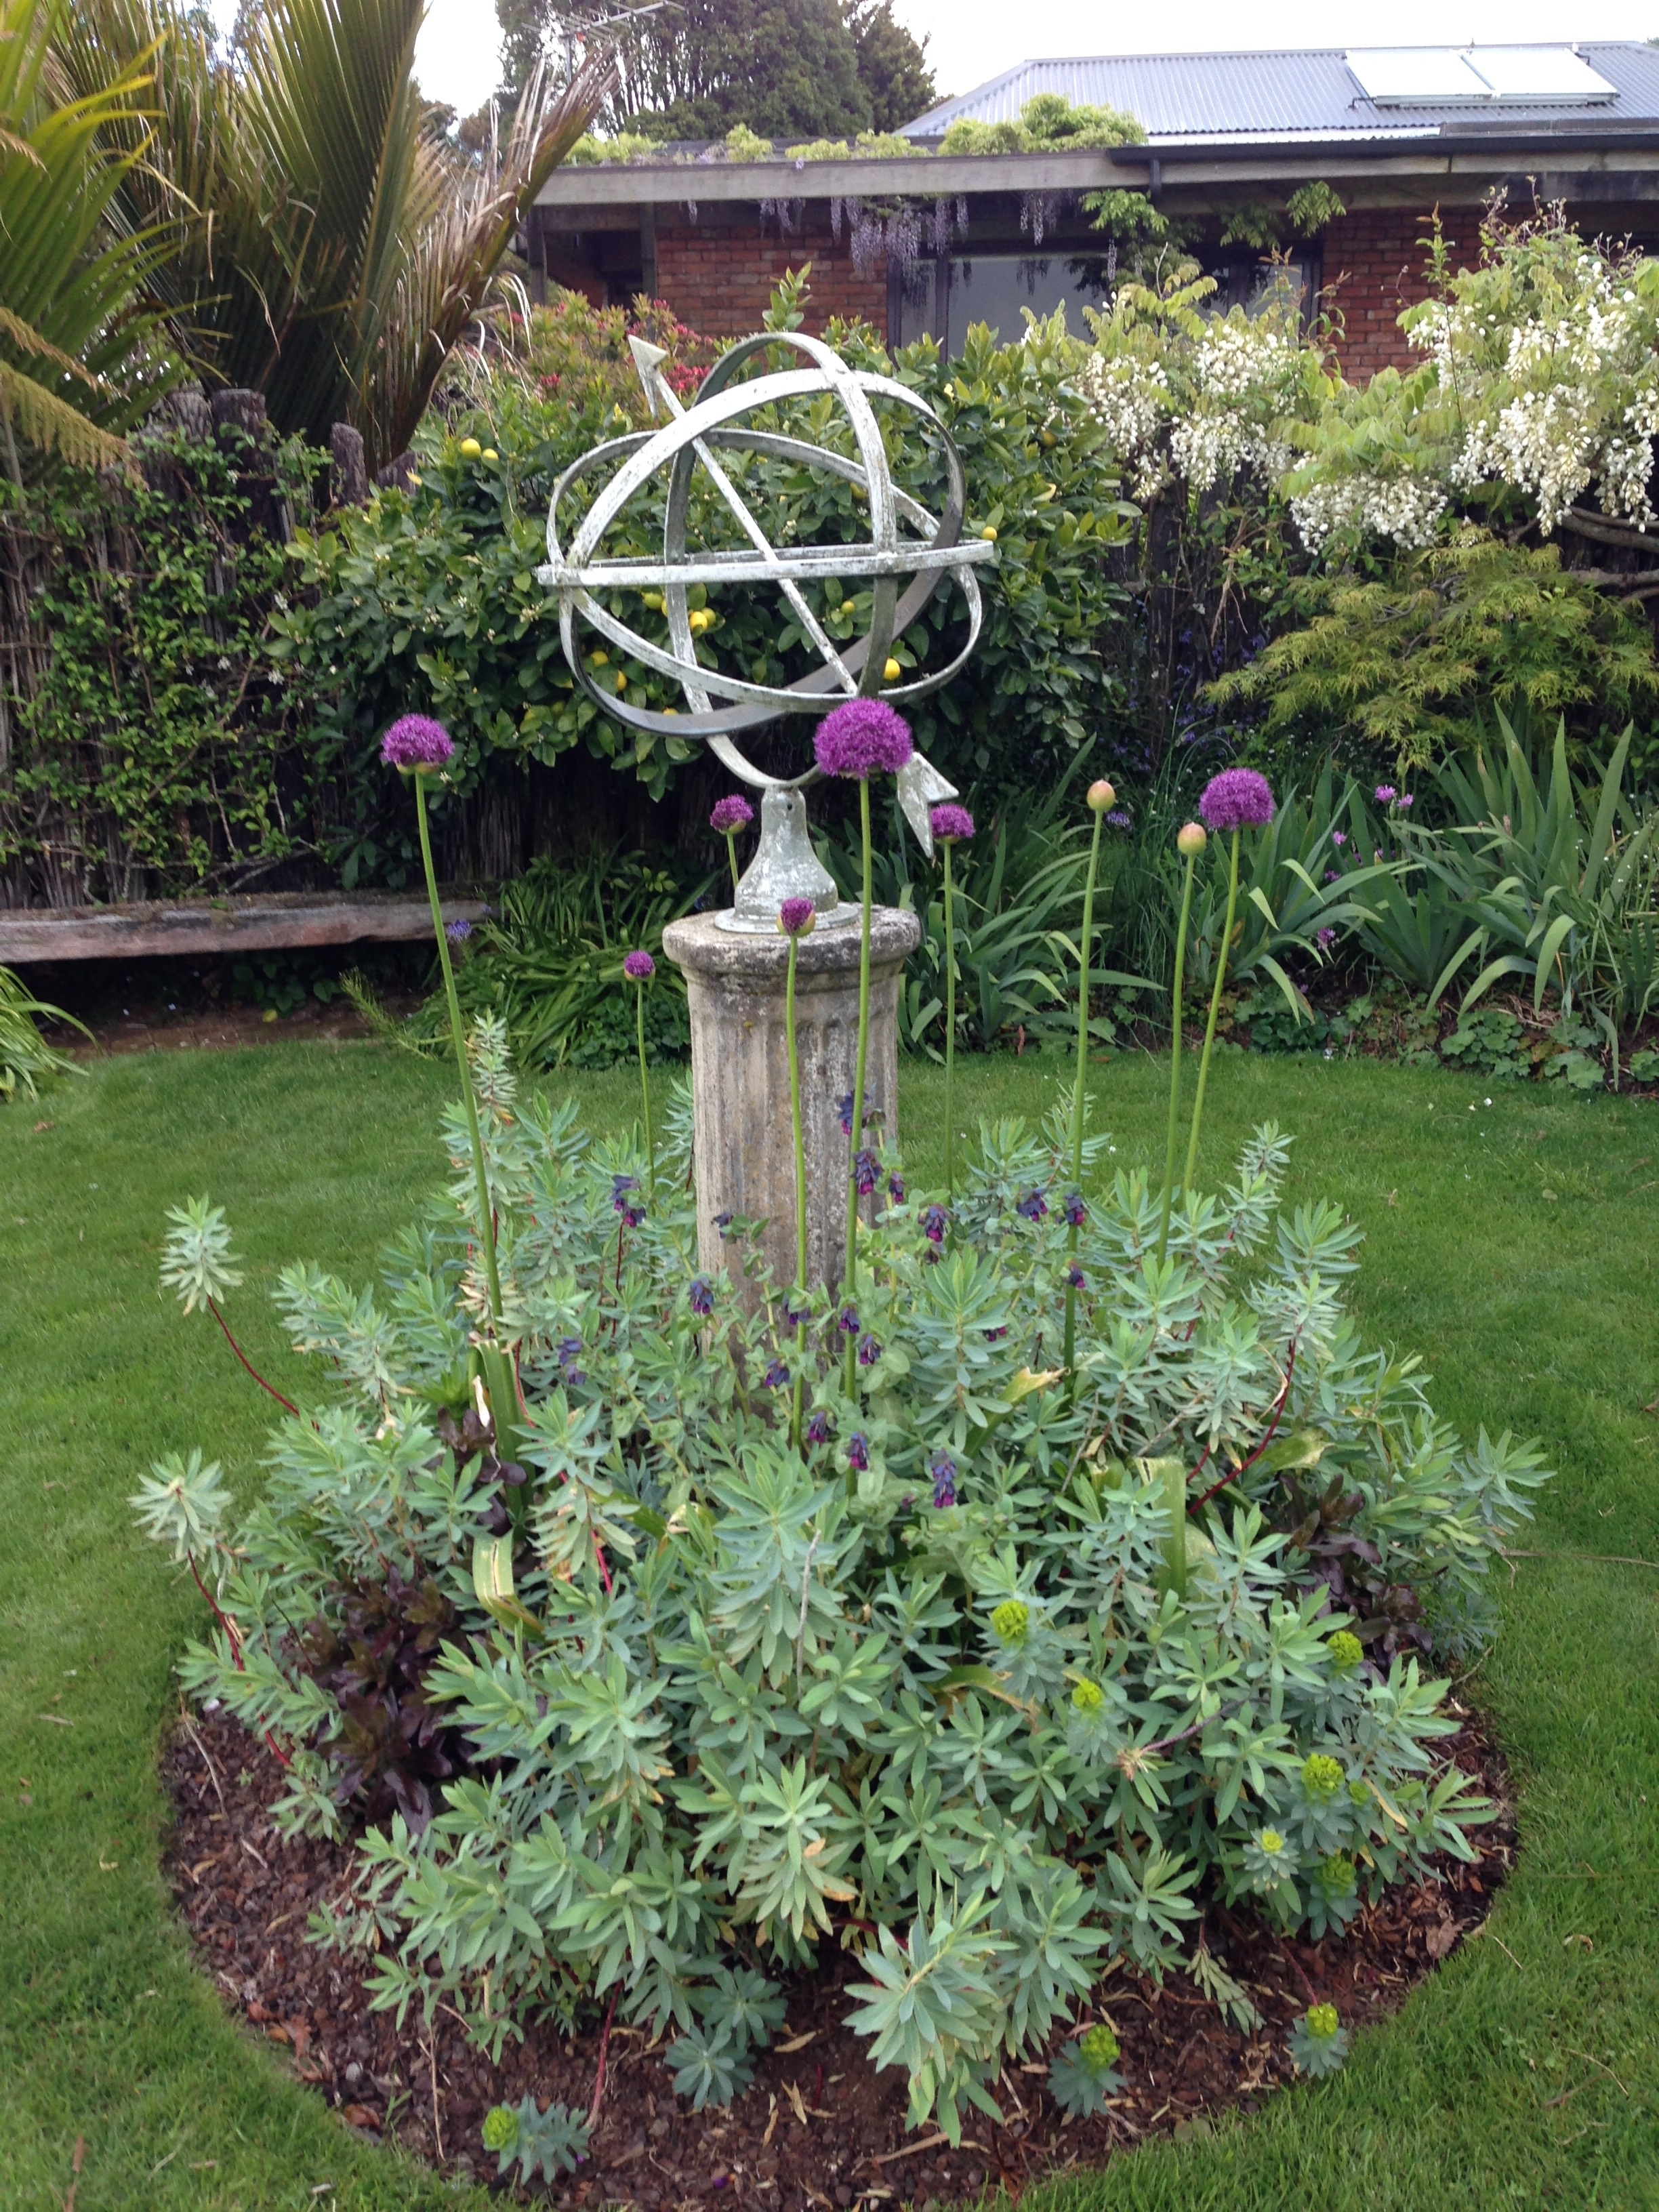 Its Meant to Be at Puketarata Garden Janna Schreier Garden Design